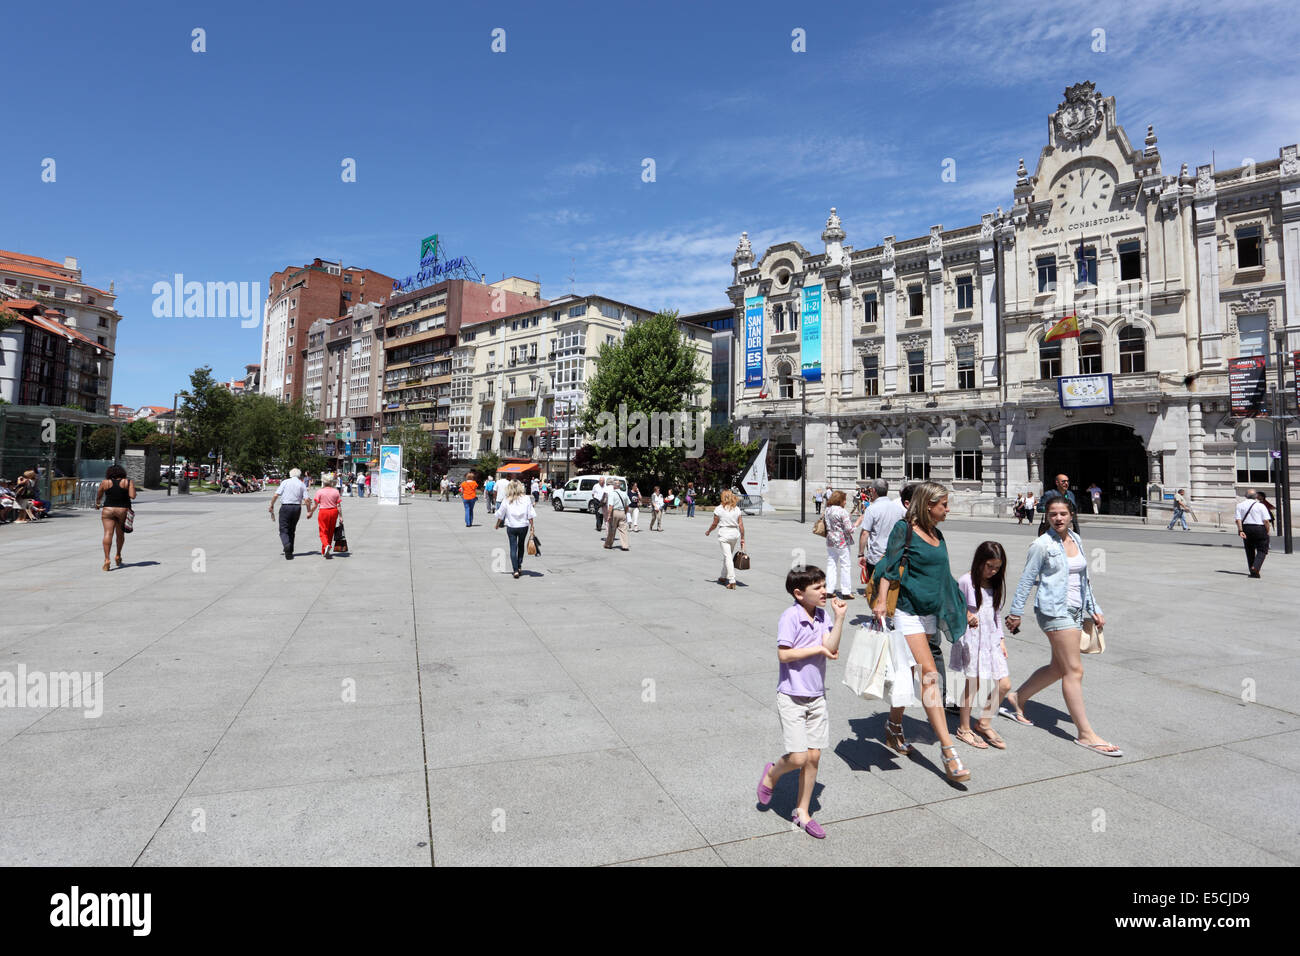 People on the Promenade in Santander, Cantabria, Spain - Stock Image